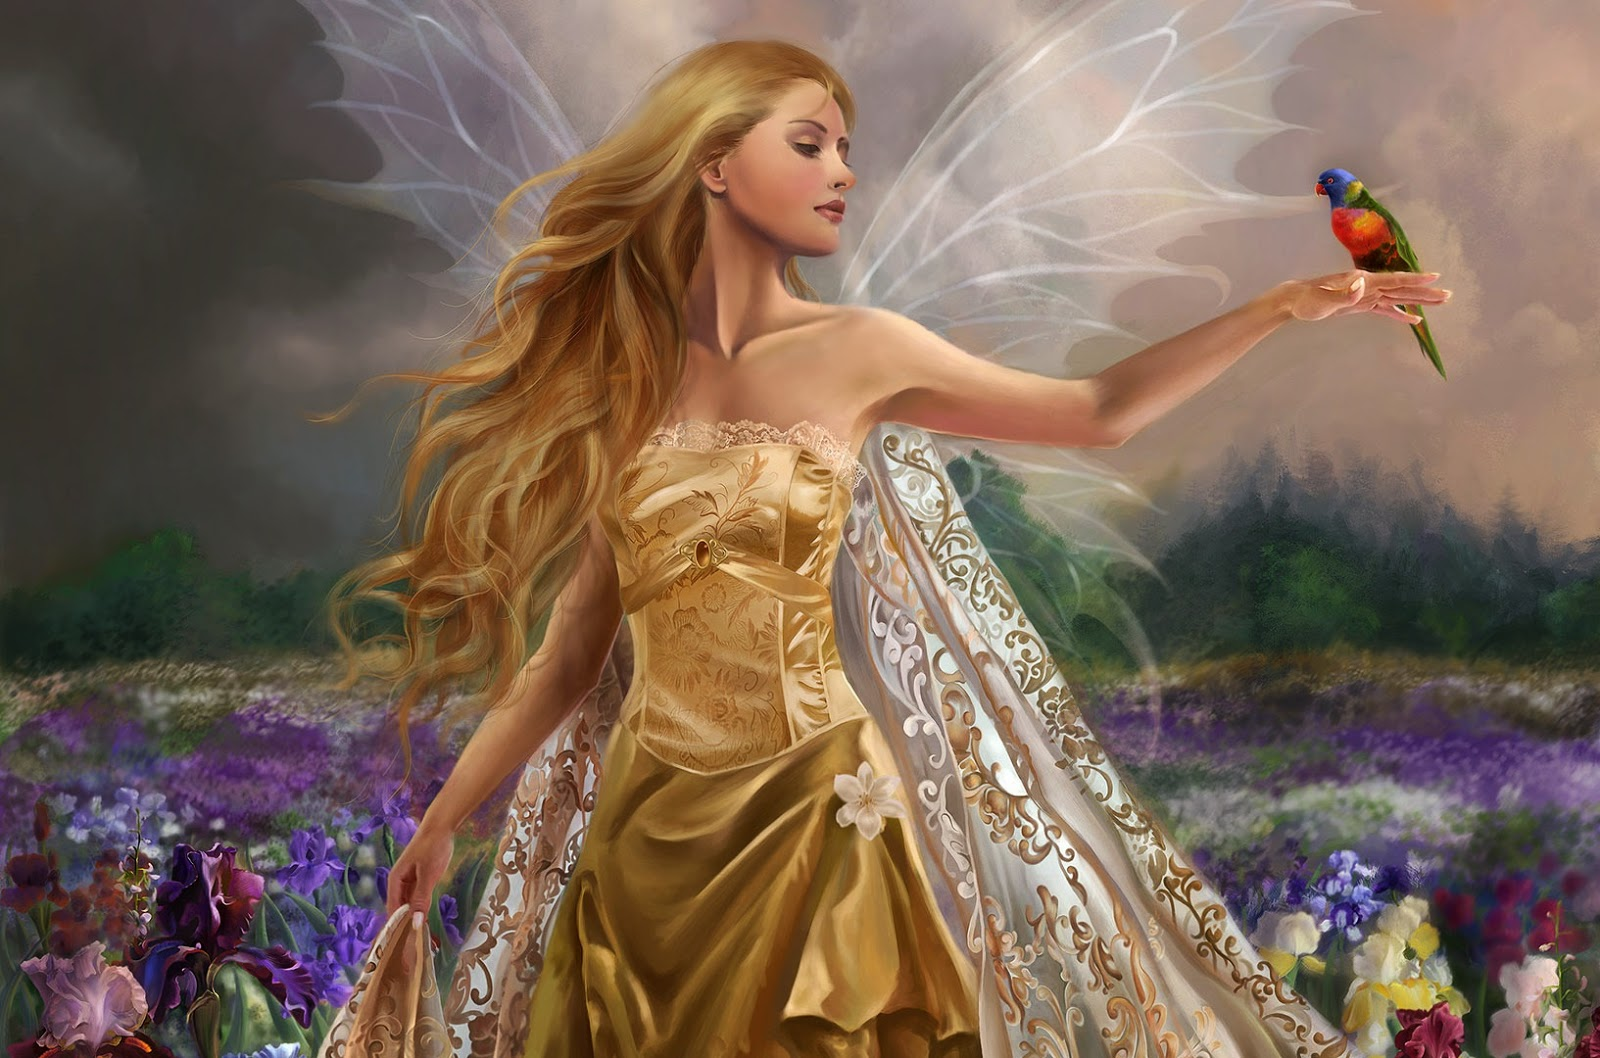 Beautiful Fairy Queens 4u Hd Wallpaper